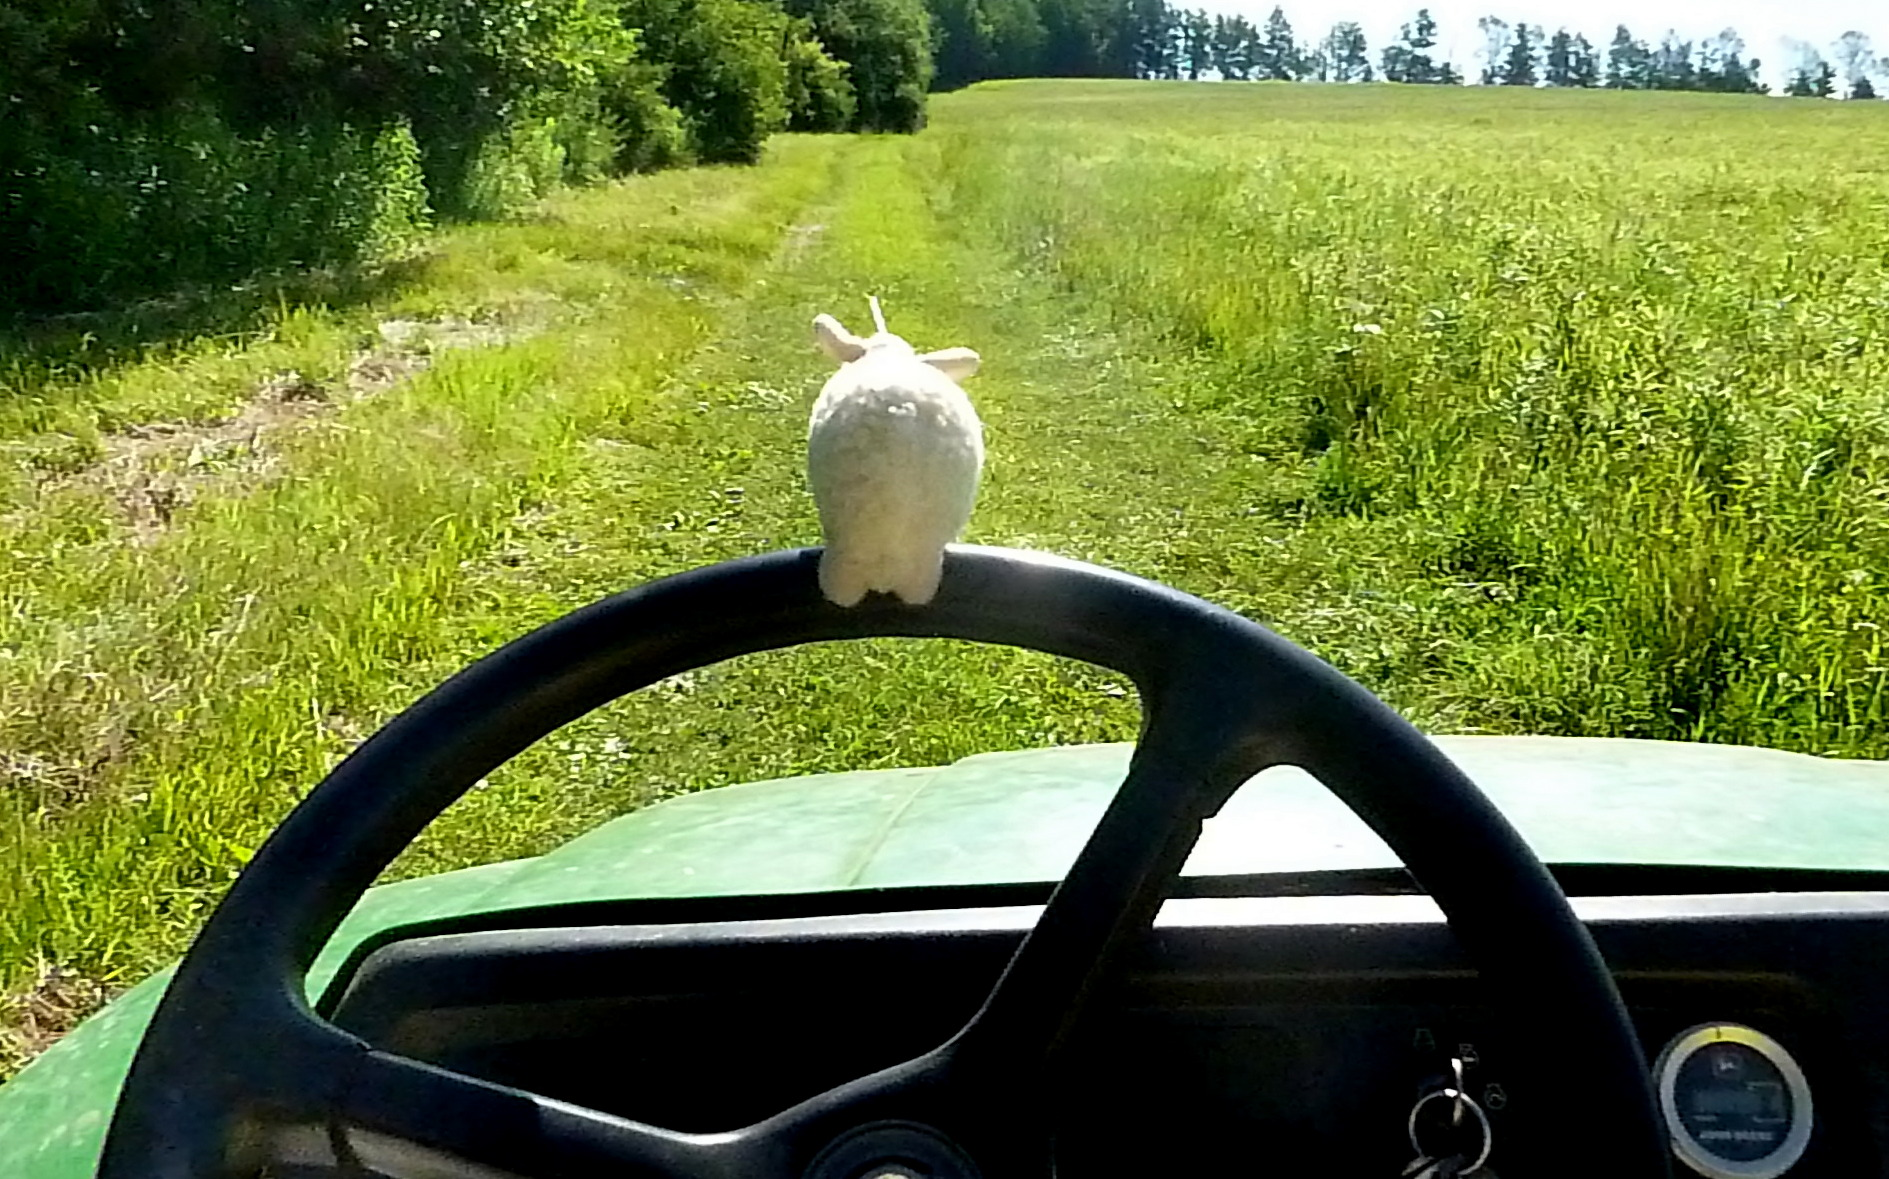 Rutherford is great at driving the Gator. He likes to feel the wind in his fur.